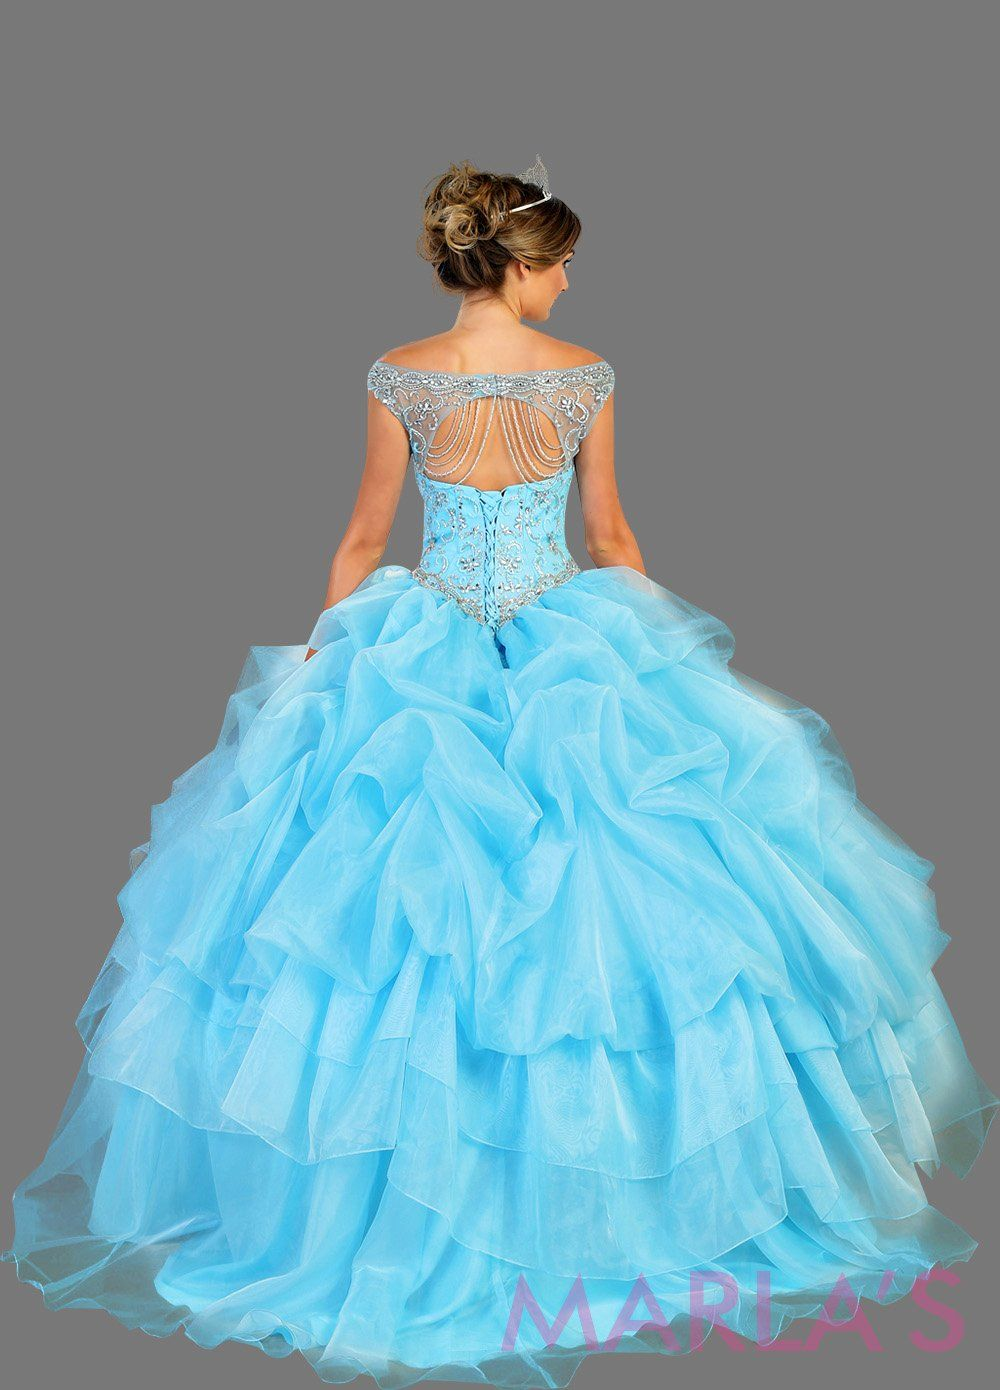 Back of Long aqua blue high neck princess quinceanera ball gown with rhinestone beading and ruffled skirt. Perfect for Engagement dress, Quinceanera, Sweet 16, Sweet 15 and light blue Wedding Reception Dress. Available in plus sizes